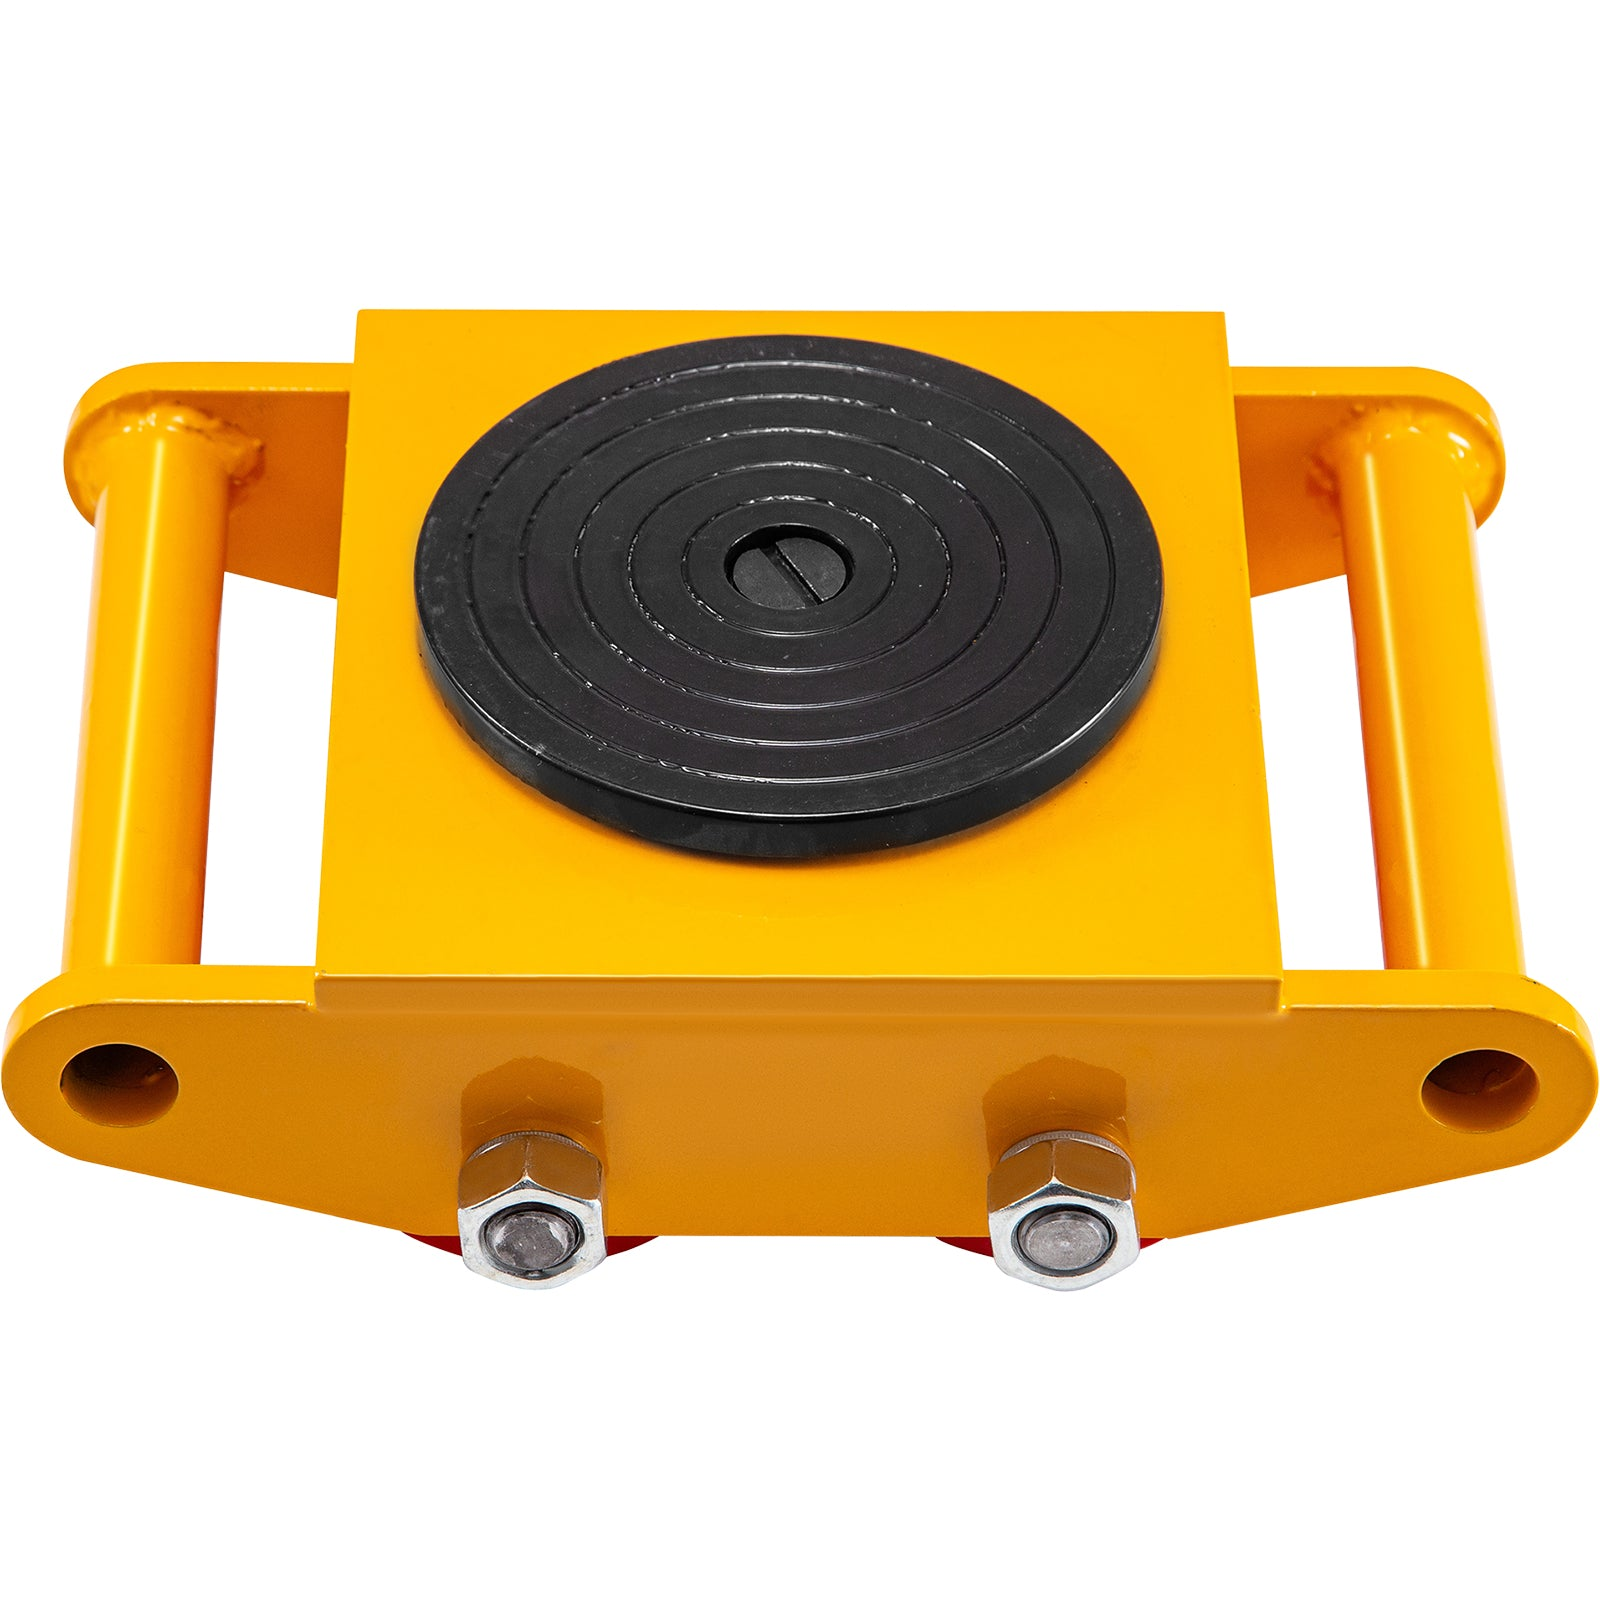 Vevor Machinery Movermachinery Skate Dolly6t, W/ 360° Rotation, 4pcs In Yellow